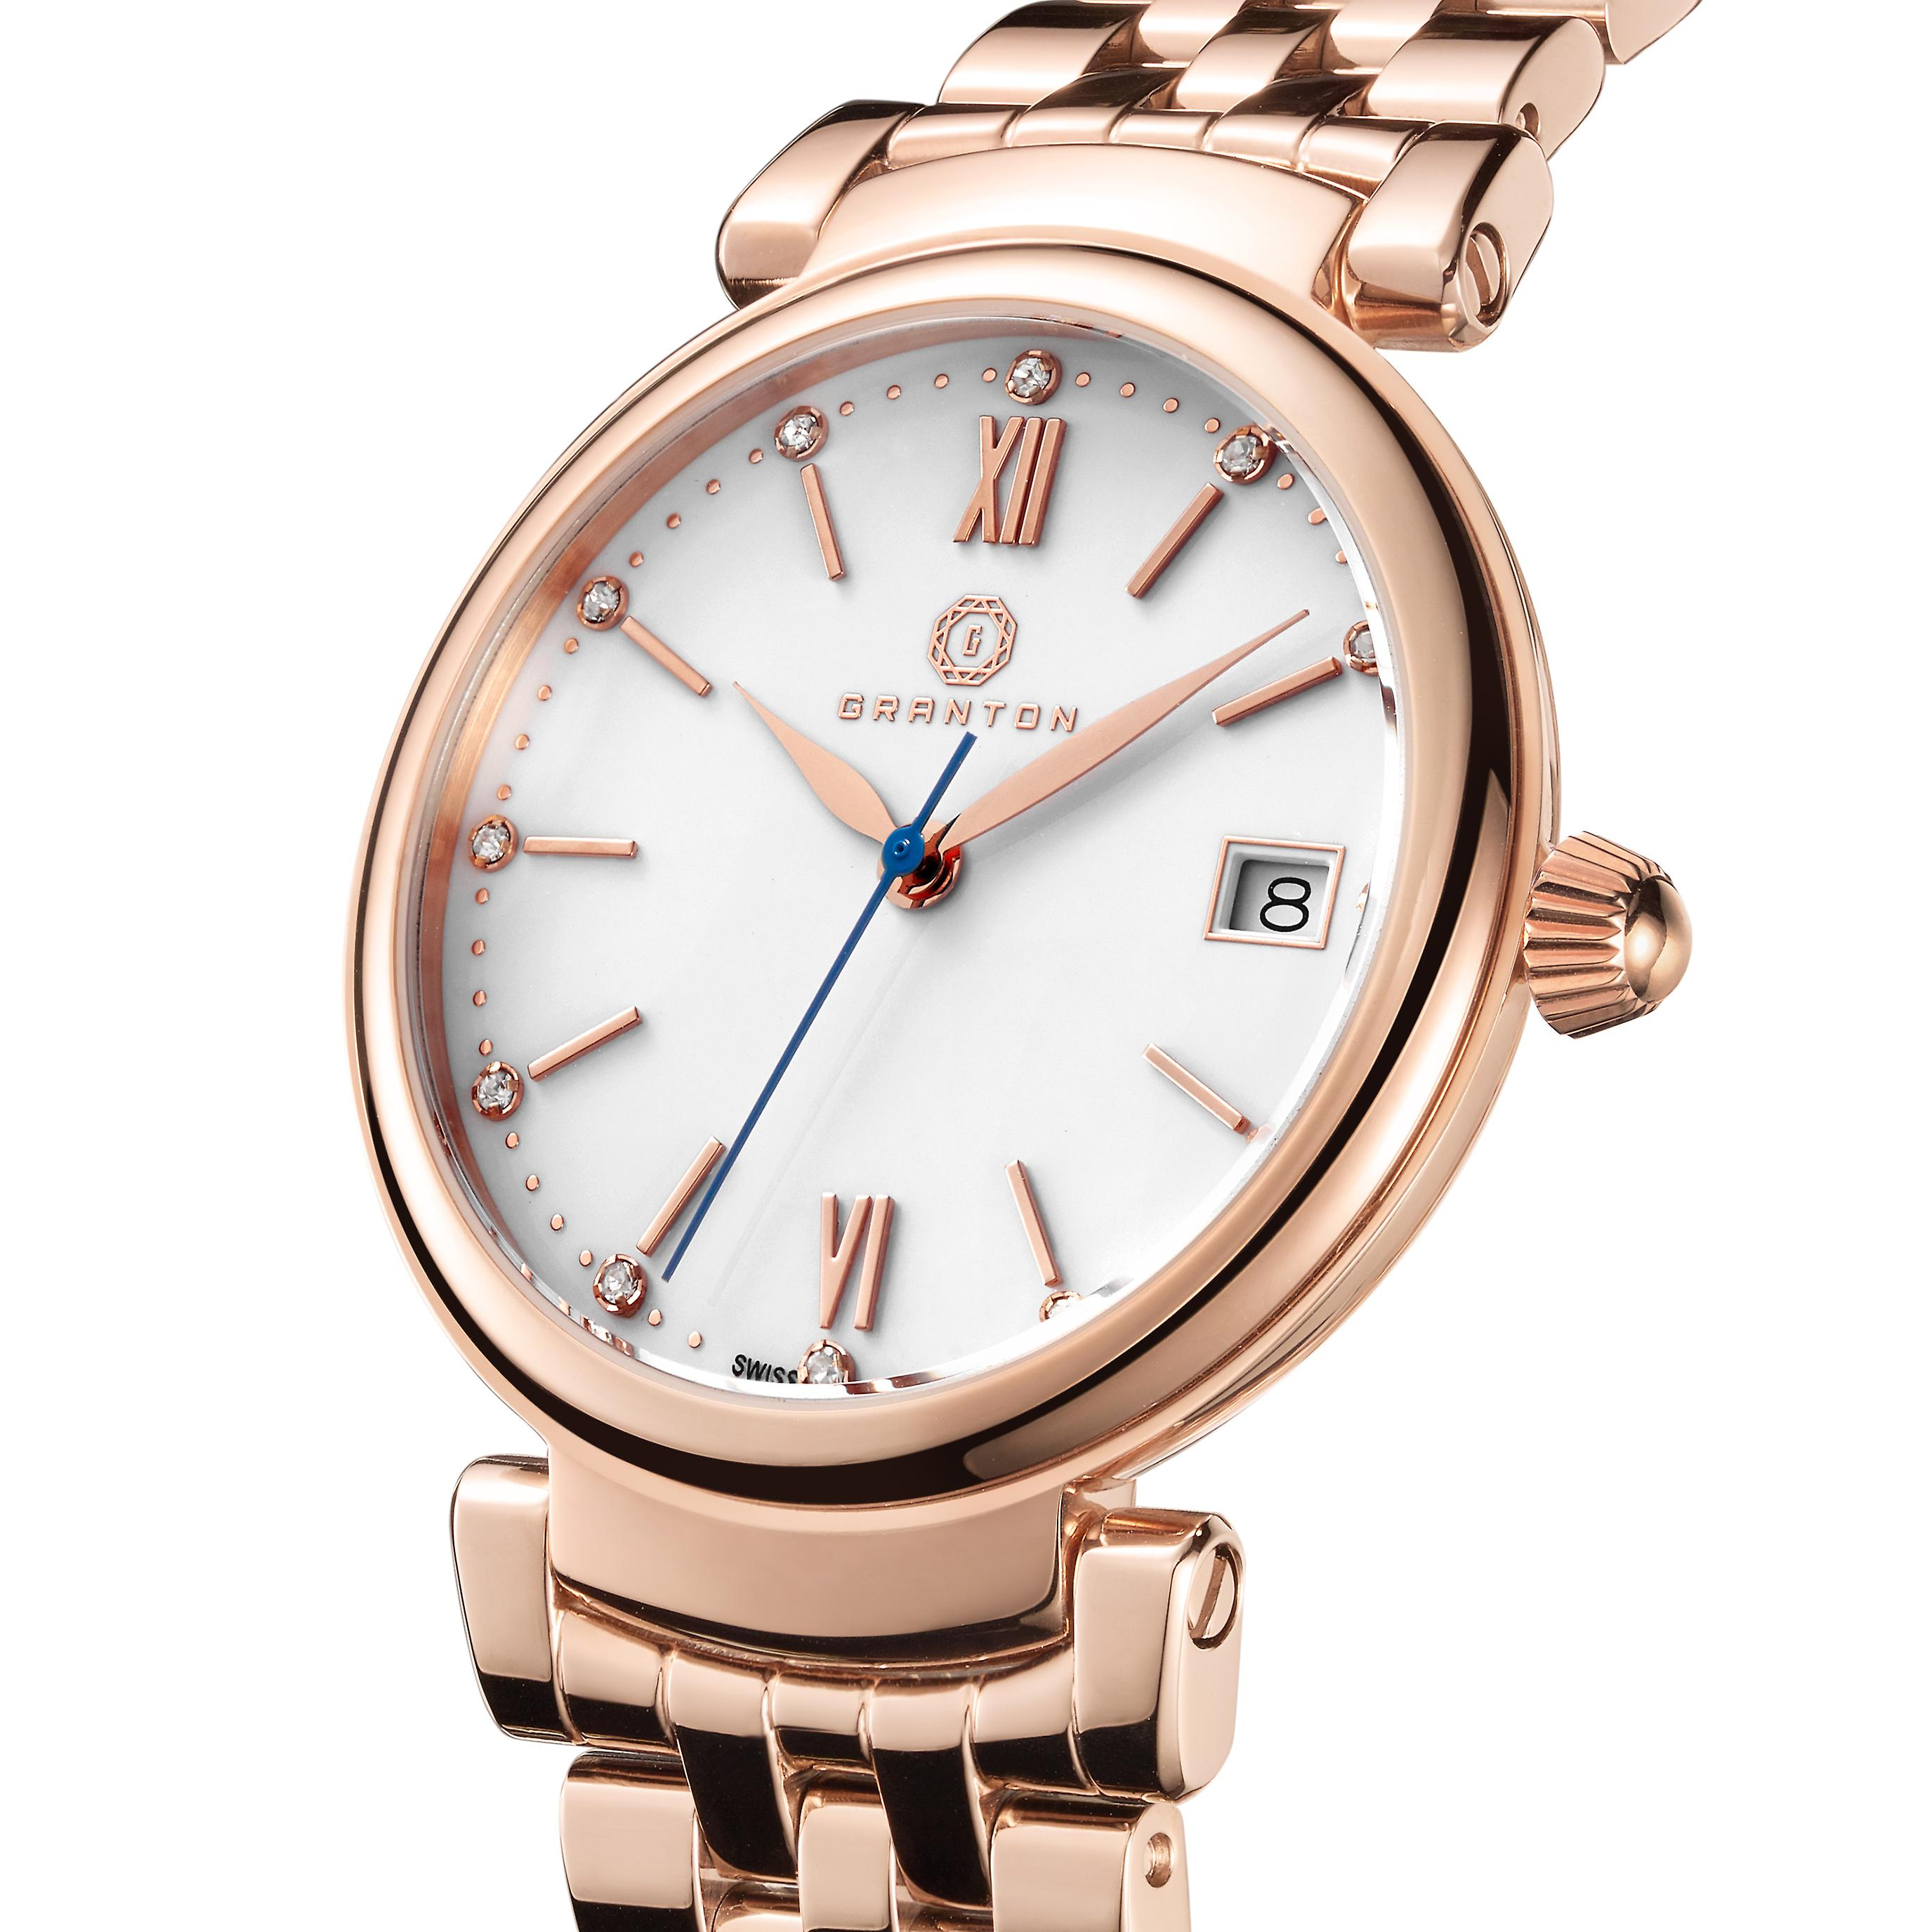 Granton Women�s Rose Gold-Tone Diamond Accented Enamel Dial Wrist Watch for Ladies � Swiss Movement Stainless Steel